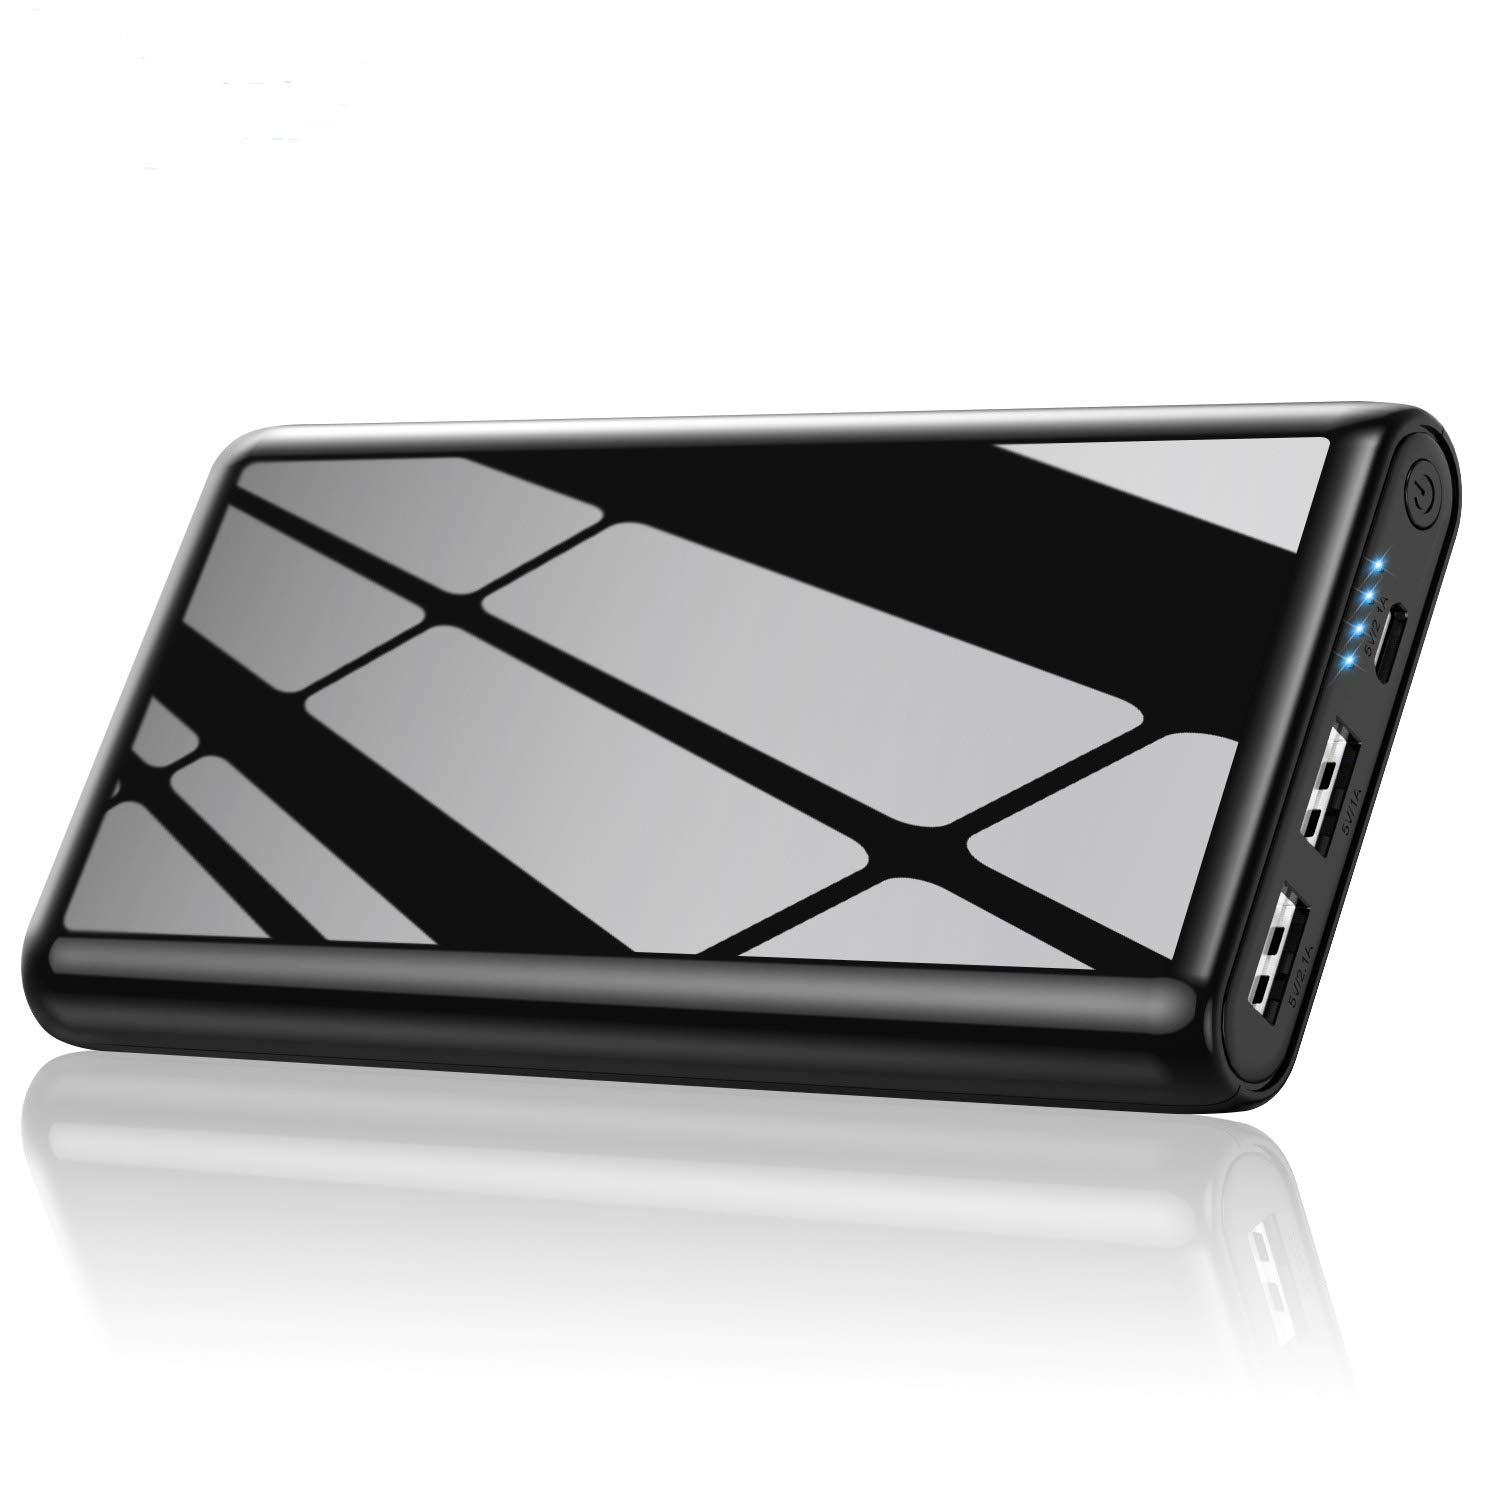 Portable Charger Power Bank 25800mAh Feob Ultra-High Capacity Portable Phone Charger with 4 LED Lights, Dual Output External Battery Pack for Smart Phone, Android Phone, Tablet and More-Black by Feob